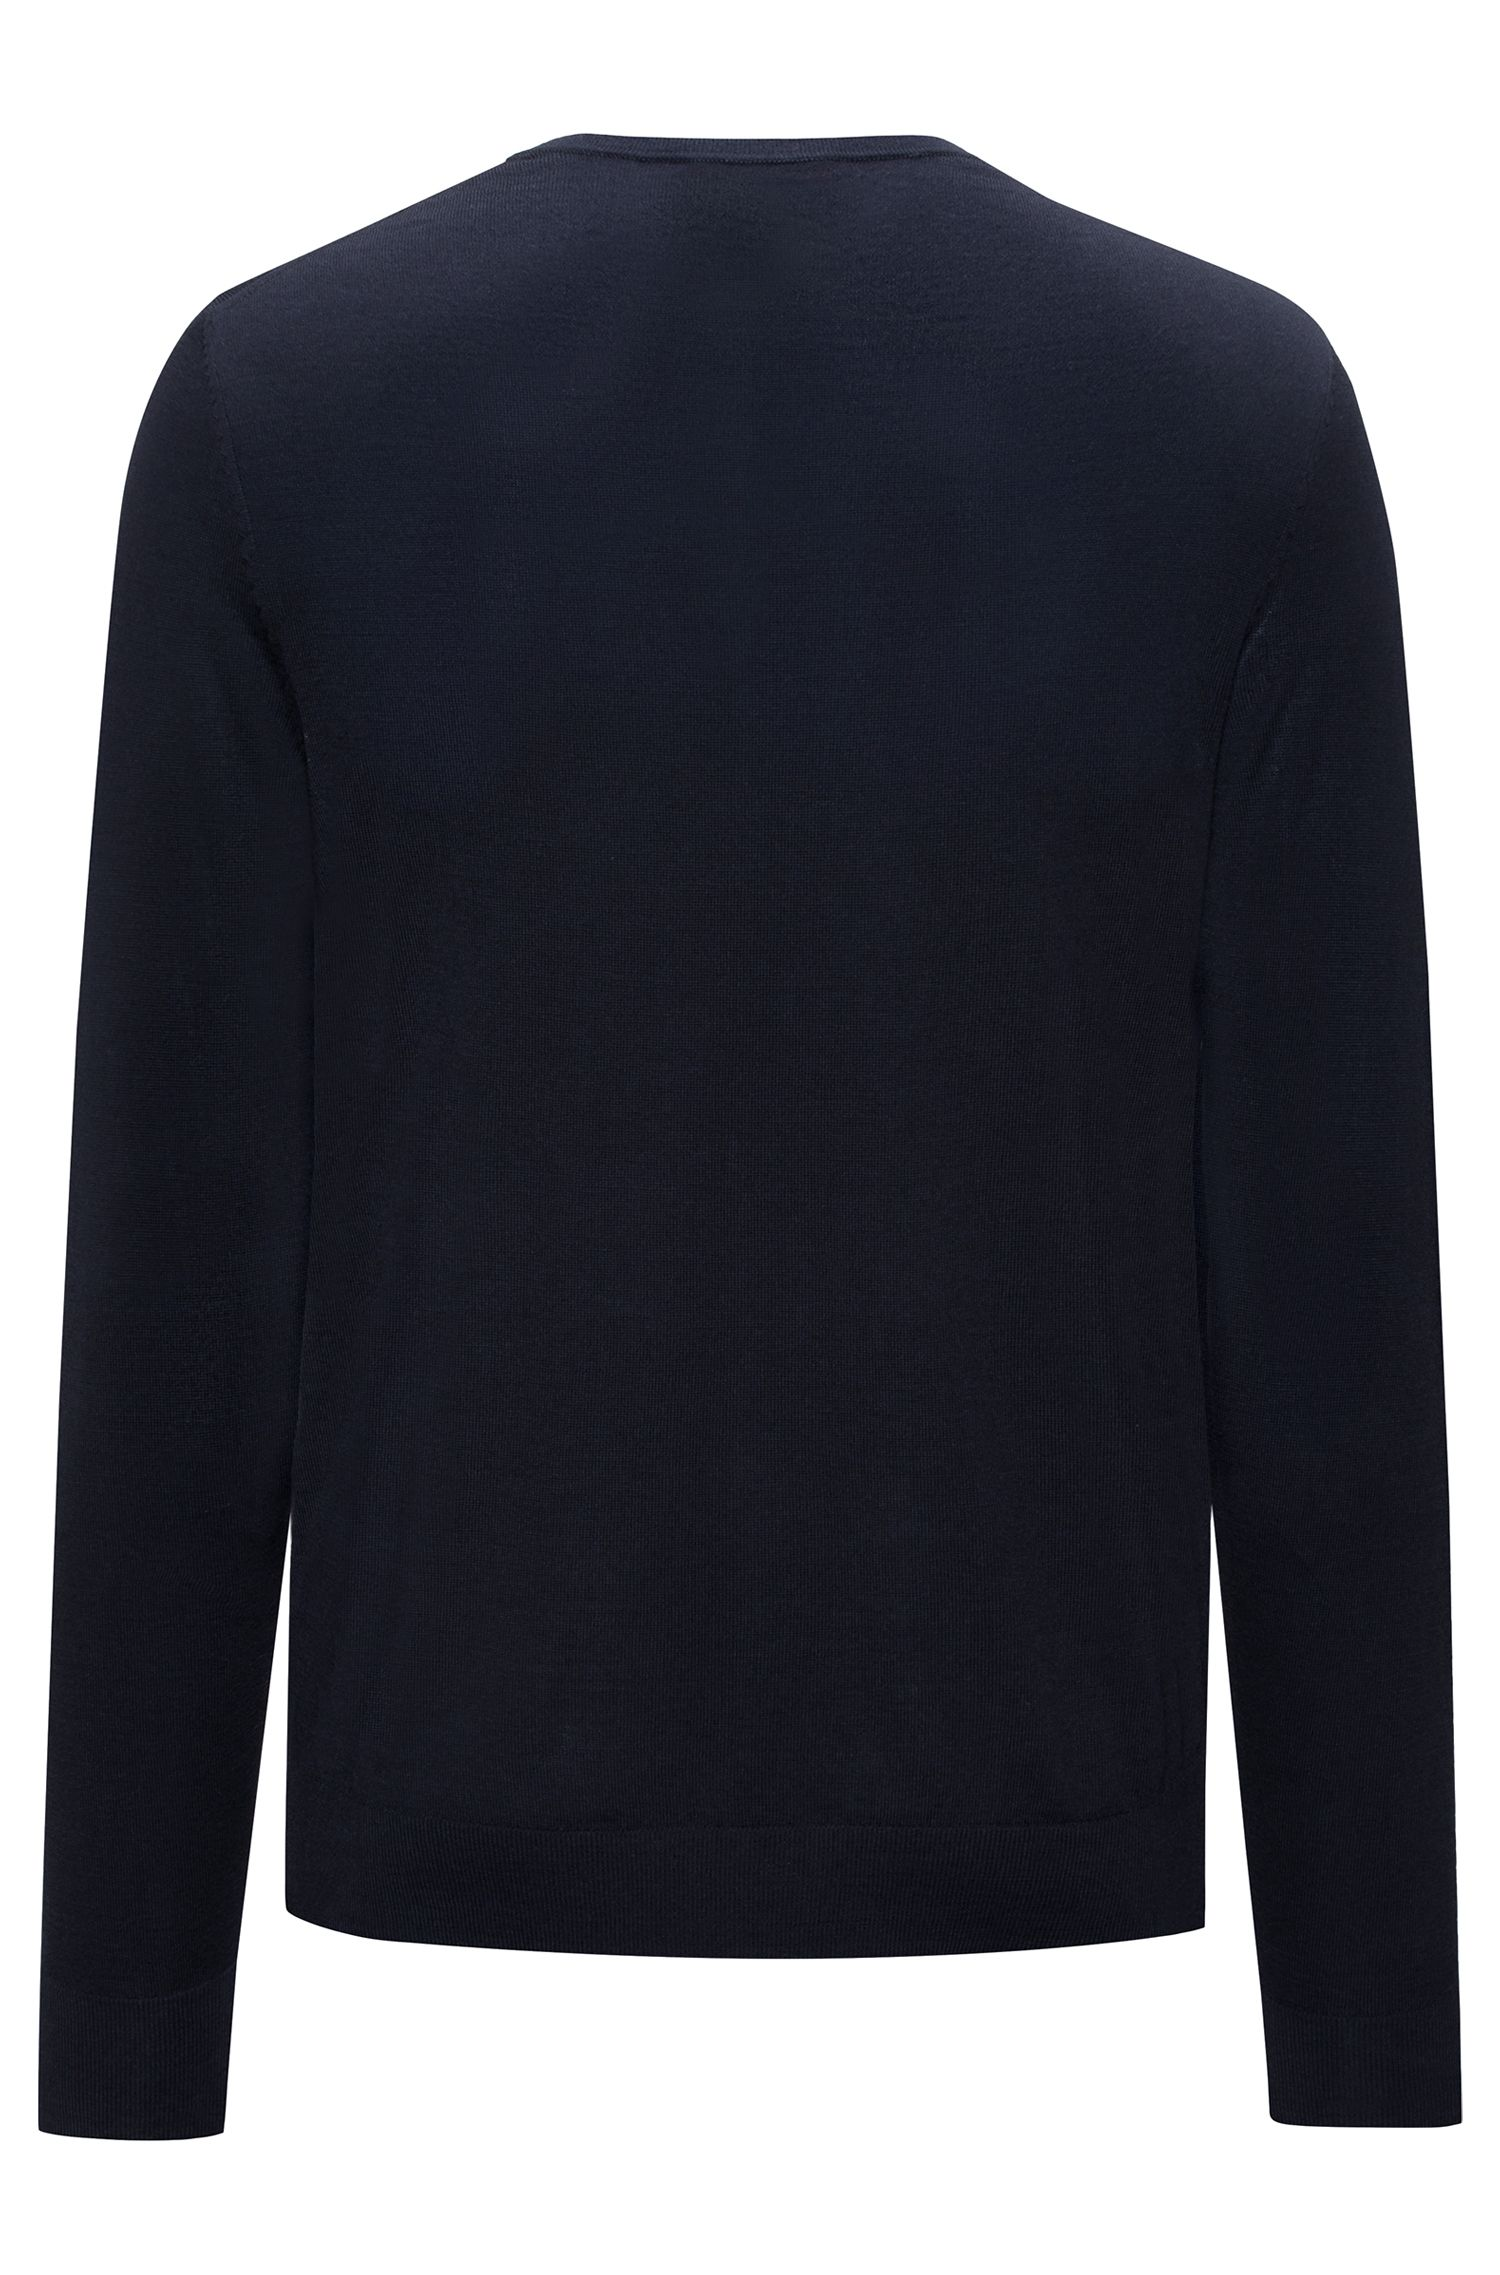 Crew-neck sweater in a lightweight merino wool blend